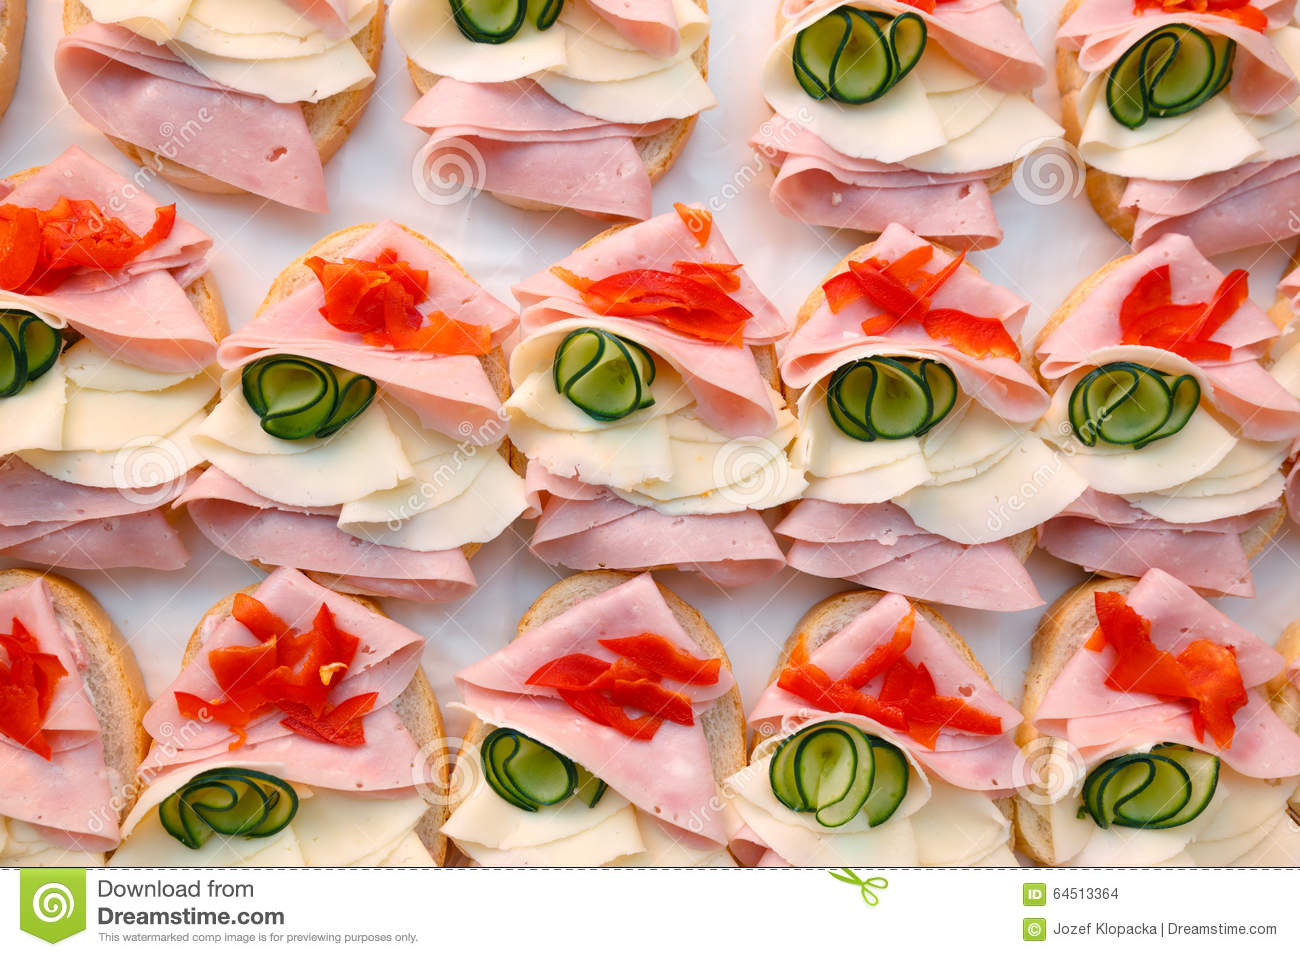 beautifully decorated food snacks and appetizers with sandwich on party or wedding celebration stock